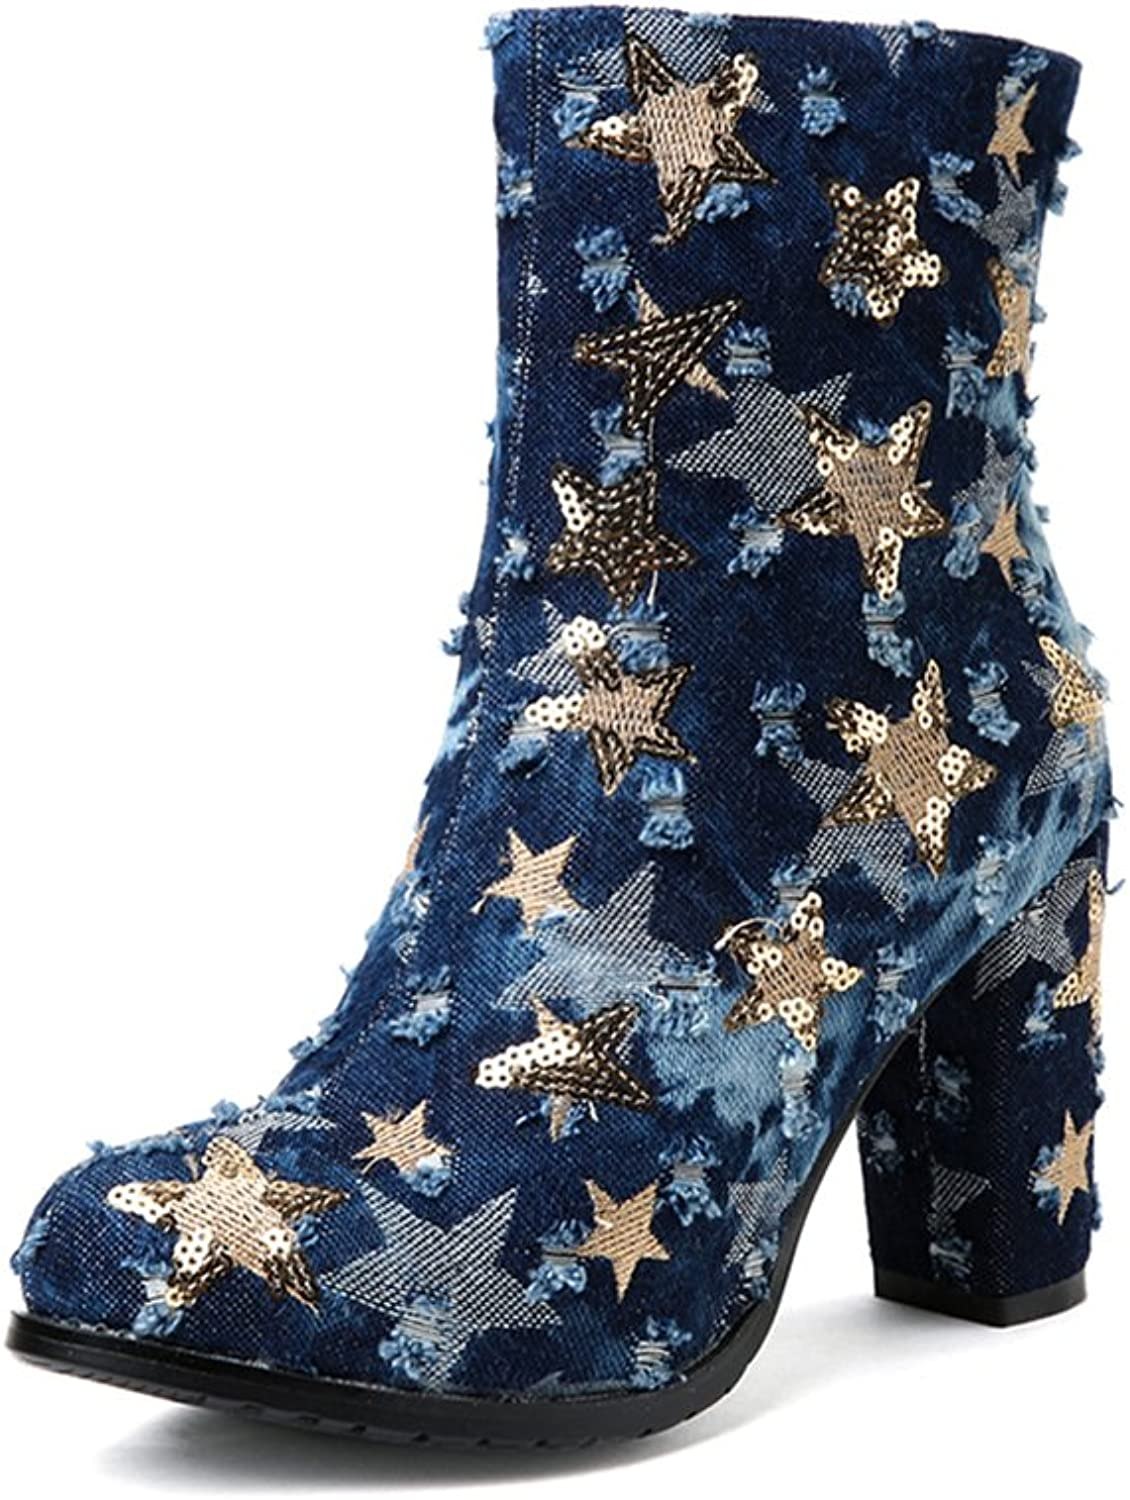 A-BUYBEA Women's Fashion Sequin Star Chunky High Heel Denim Ankle Boots shoes